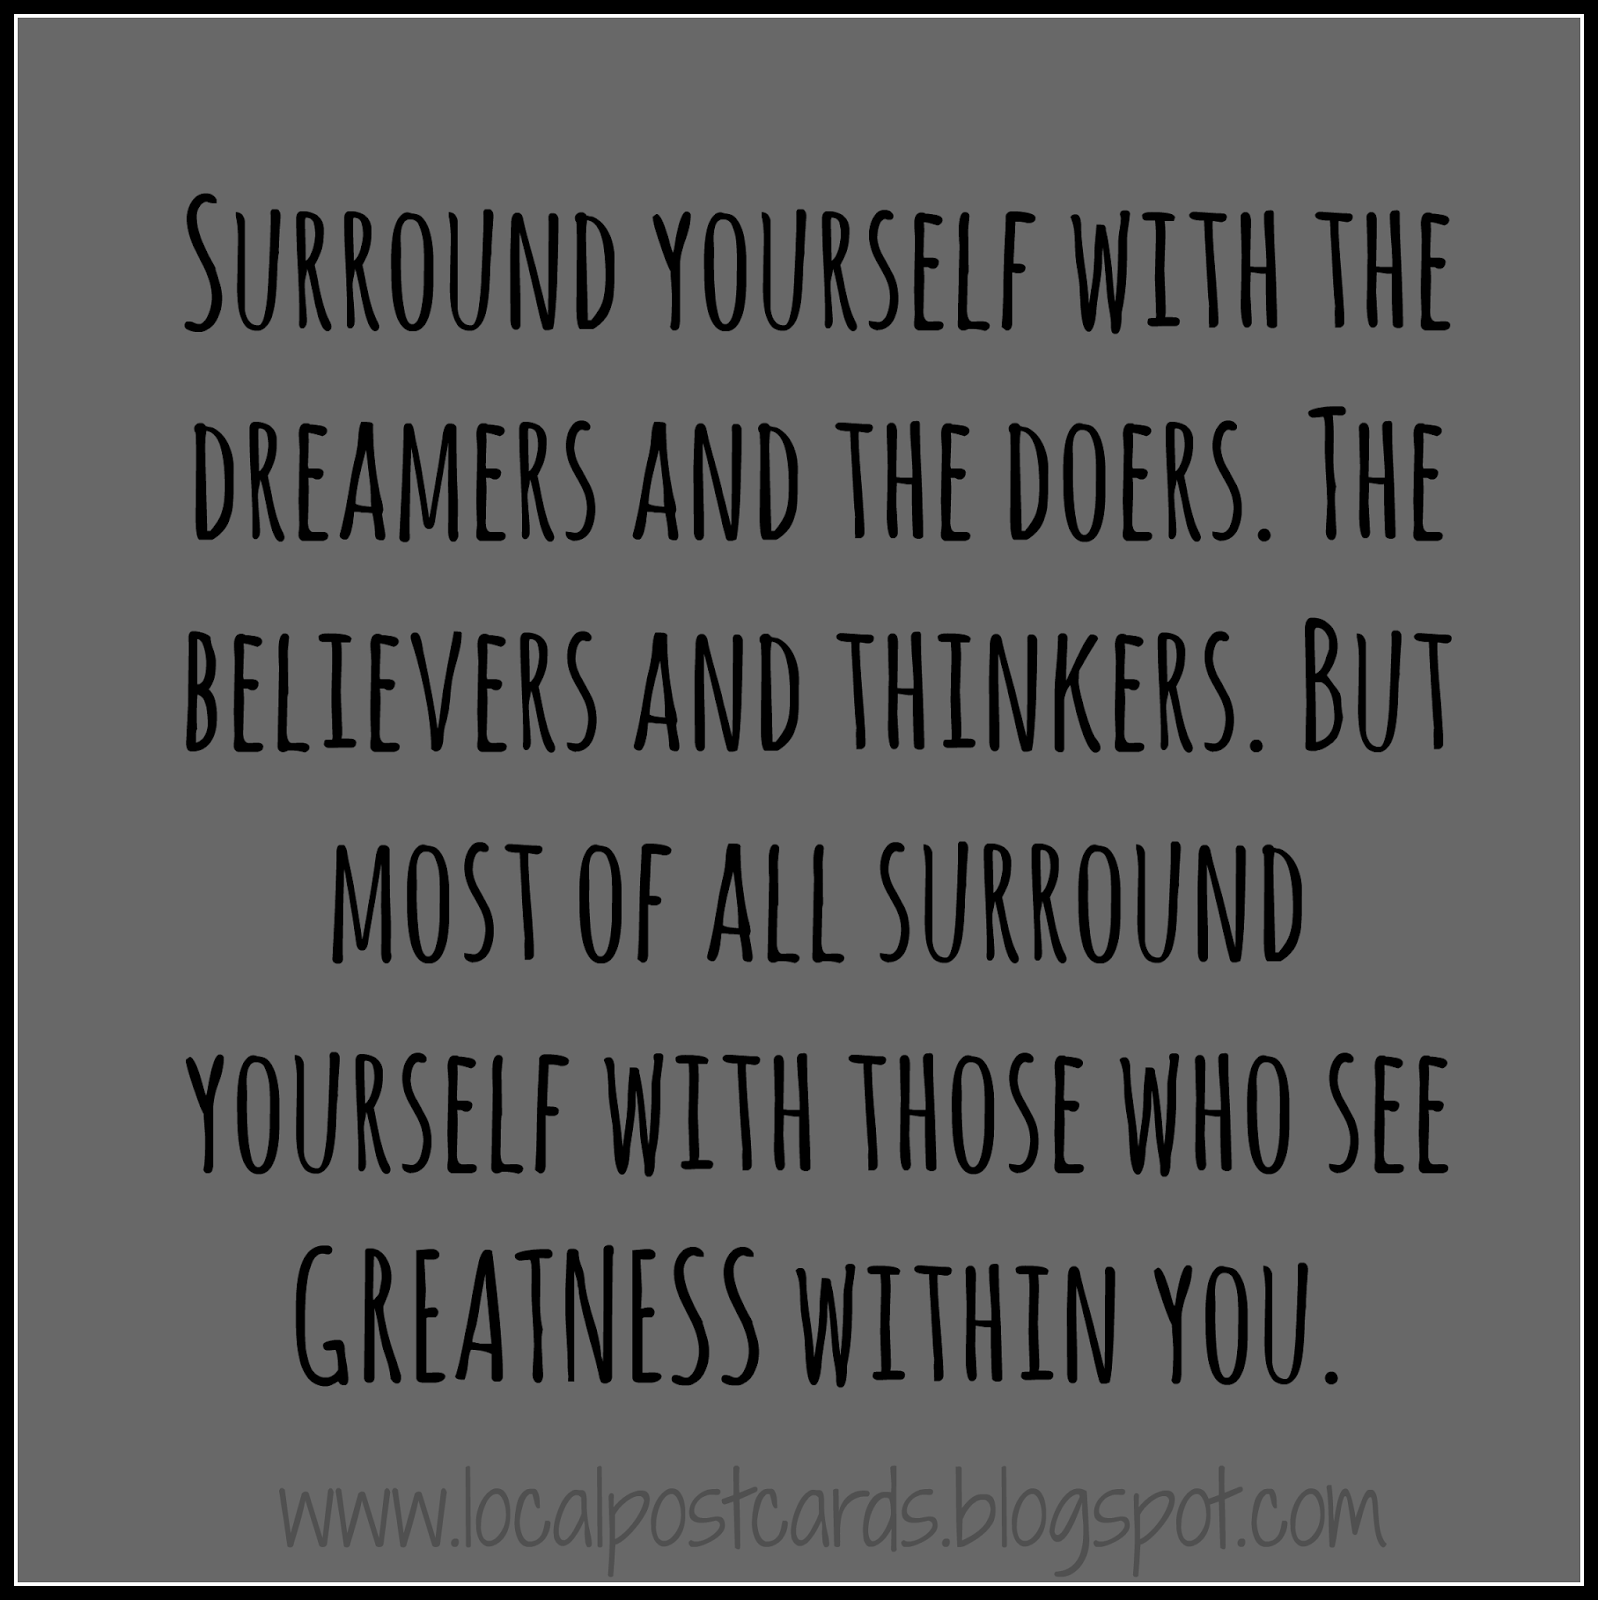 Surround Yourself with the Dreamers and Doers